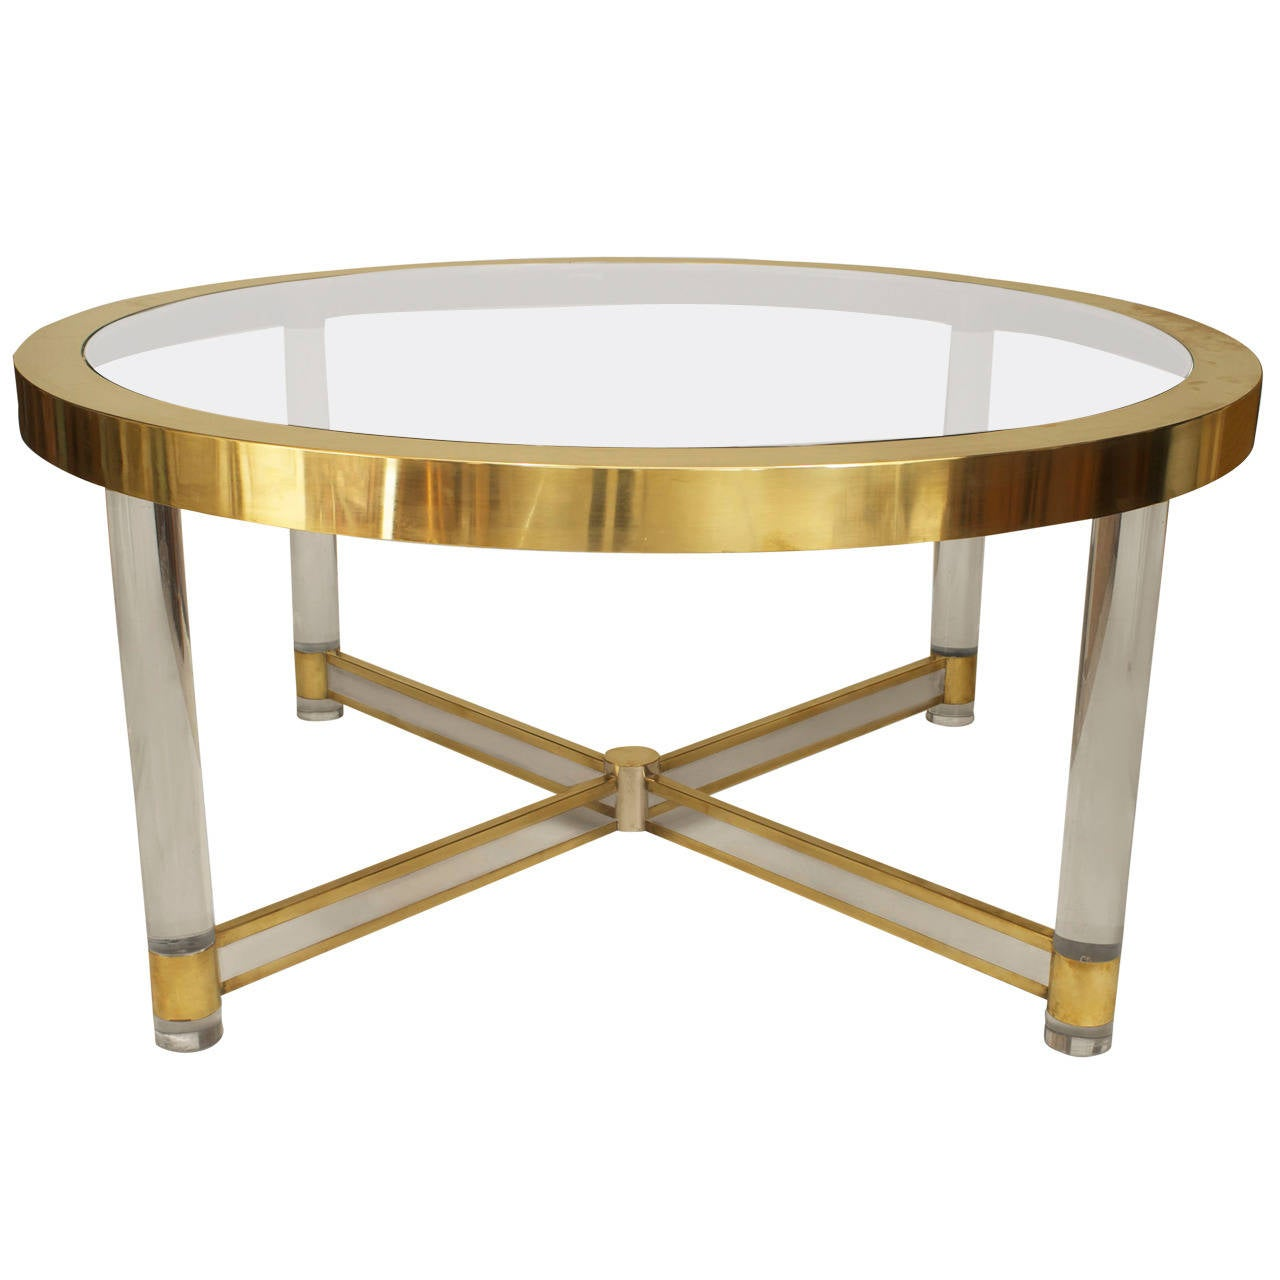 French silver and brass trimmed glass and lucite dining table at 1stdibs - Silver dining tables ...